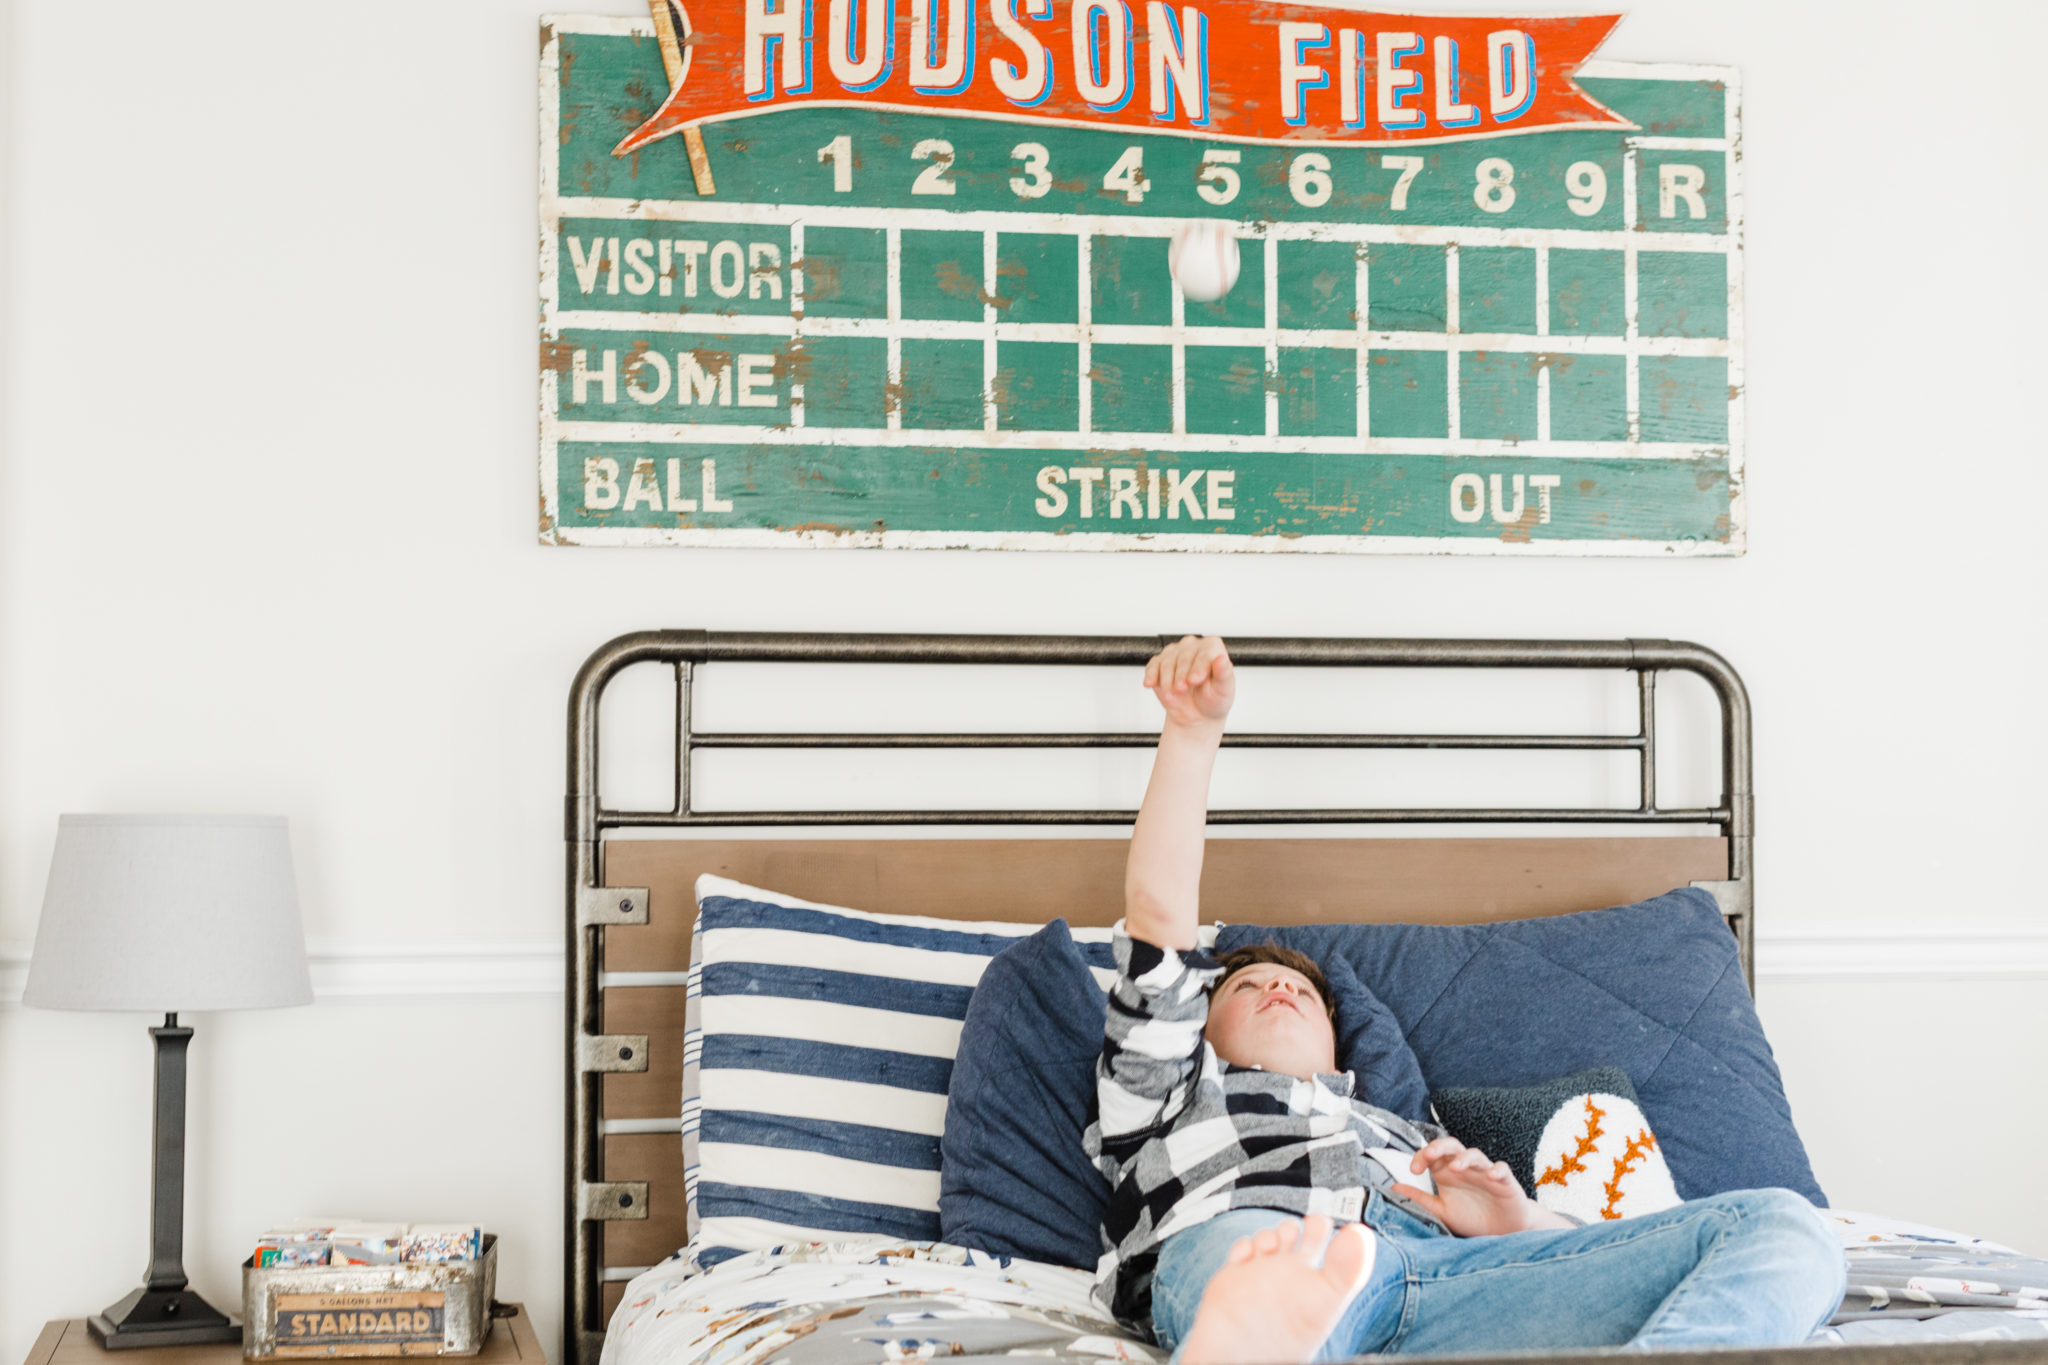 Baseball Bedroom Decor | boy bedroom decor ideas | baseball inspired home decor || JennyCookies.com #boybedroom #baseballdecor #kidsrooms #jennycookies